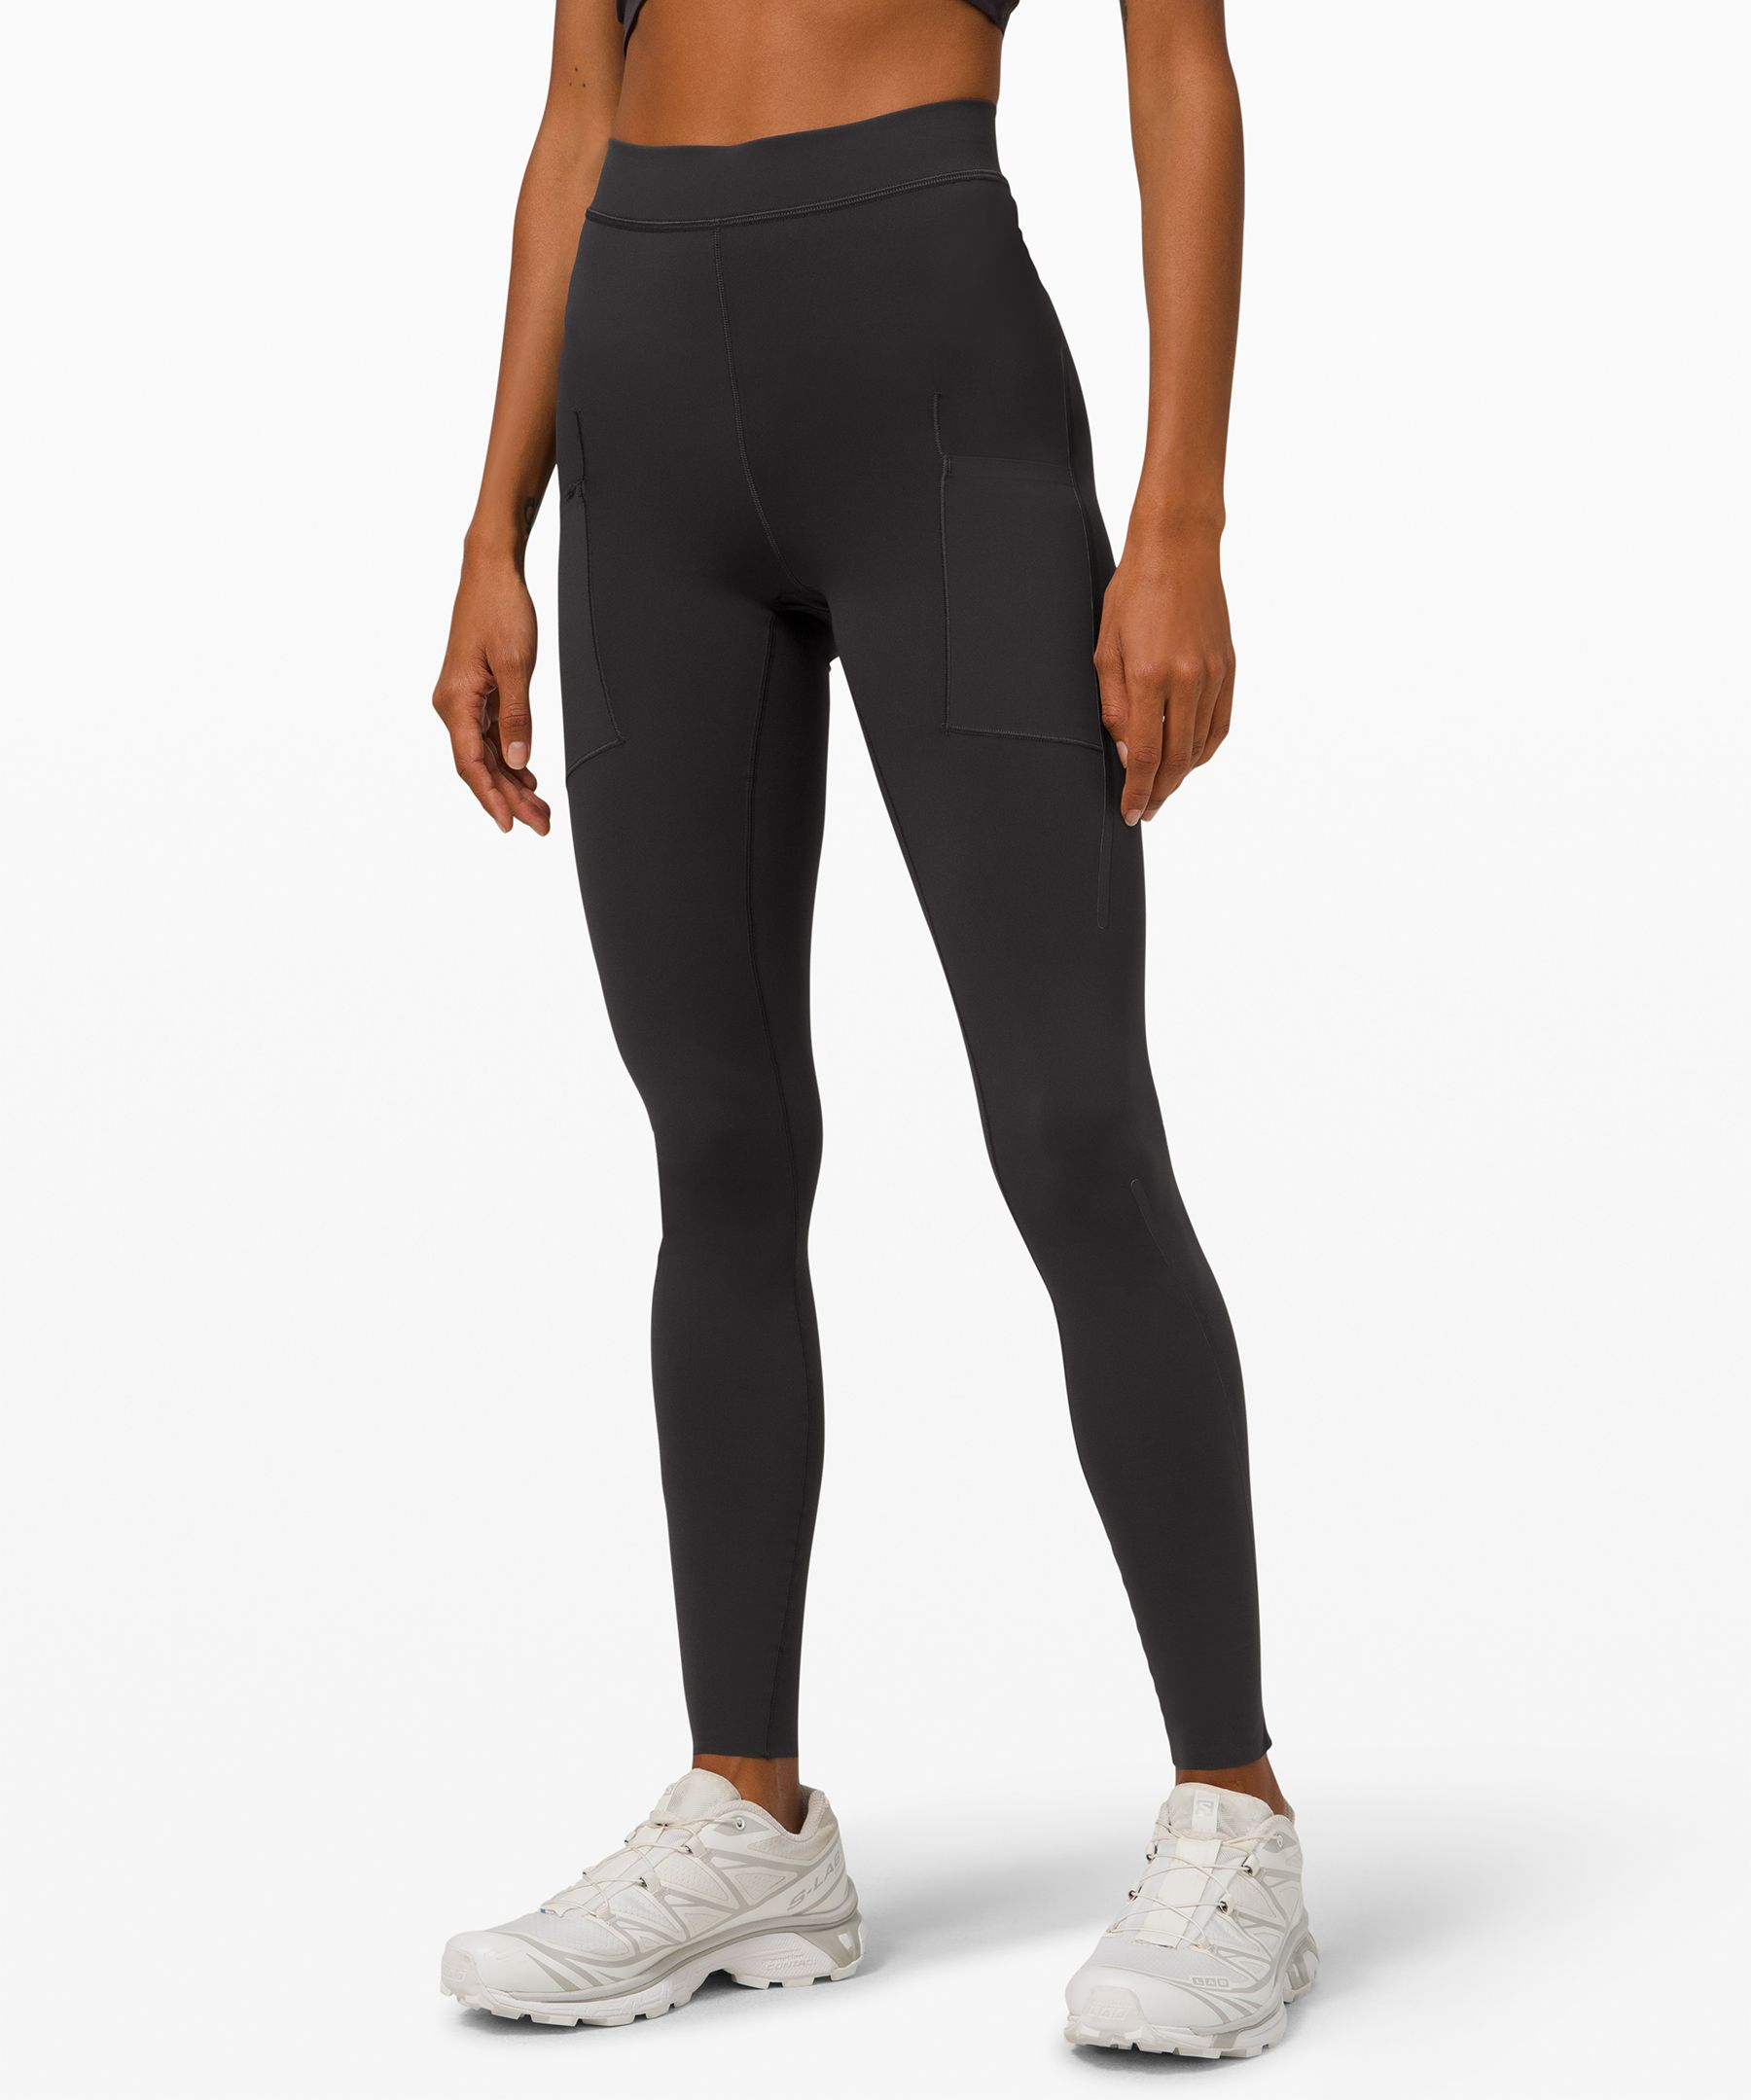 Alacer Tight *lululemon lab